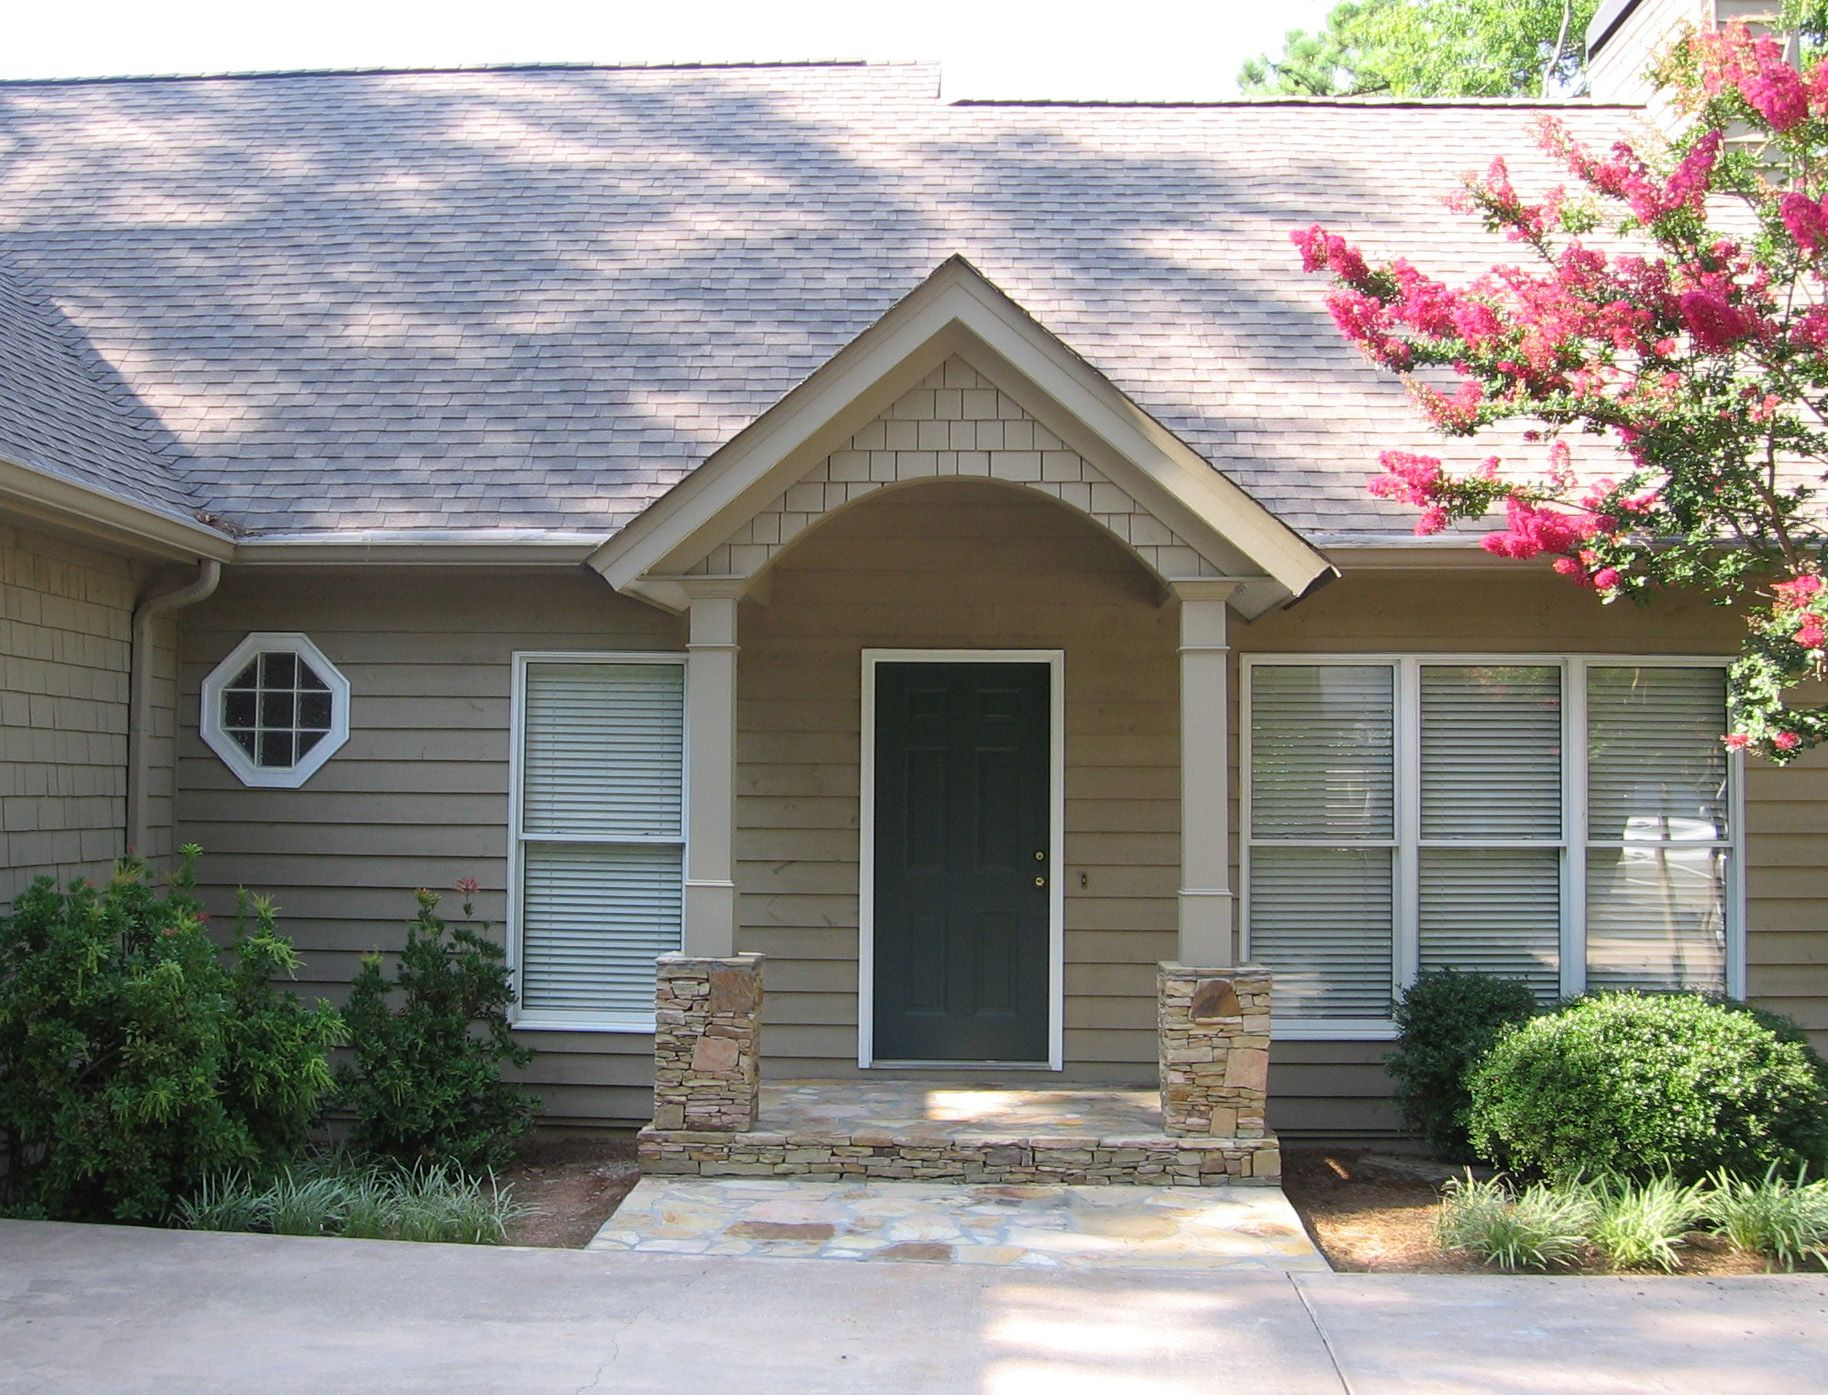 Simple Arched Portico For Ranch Style Home Front